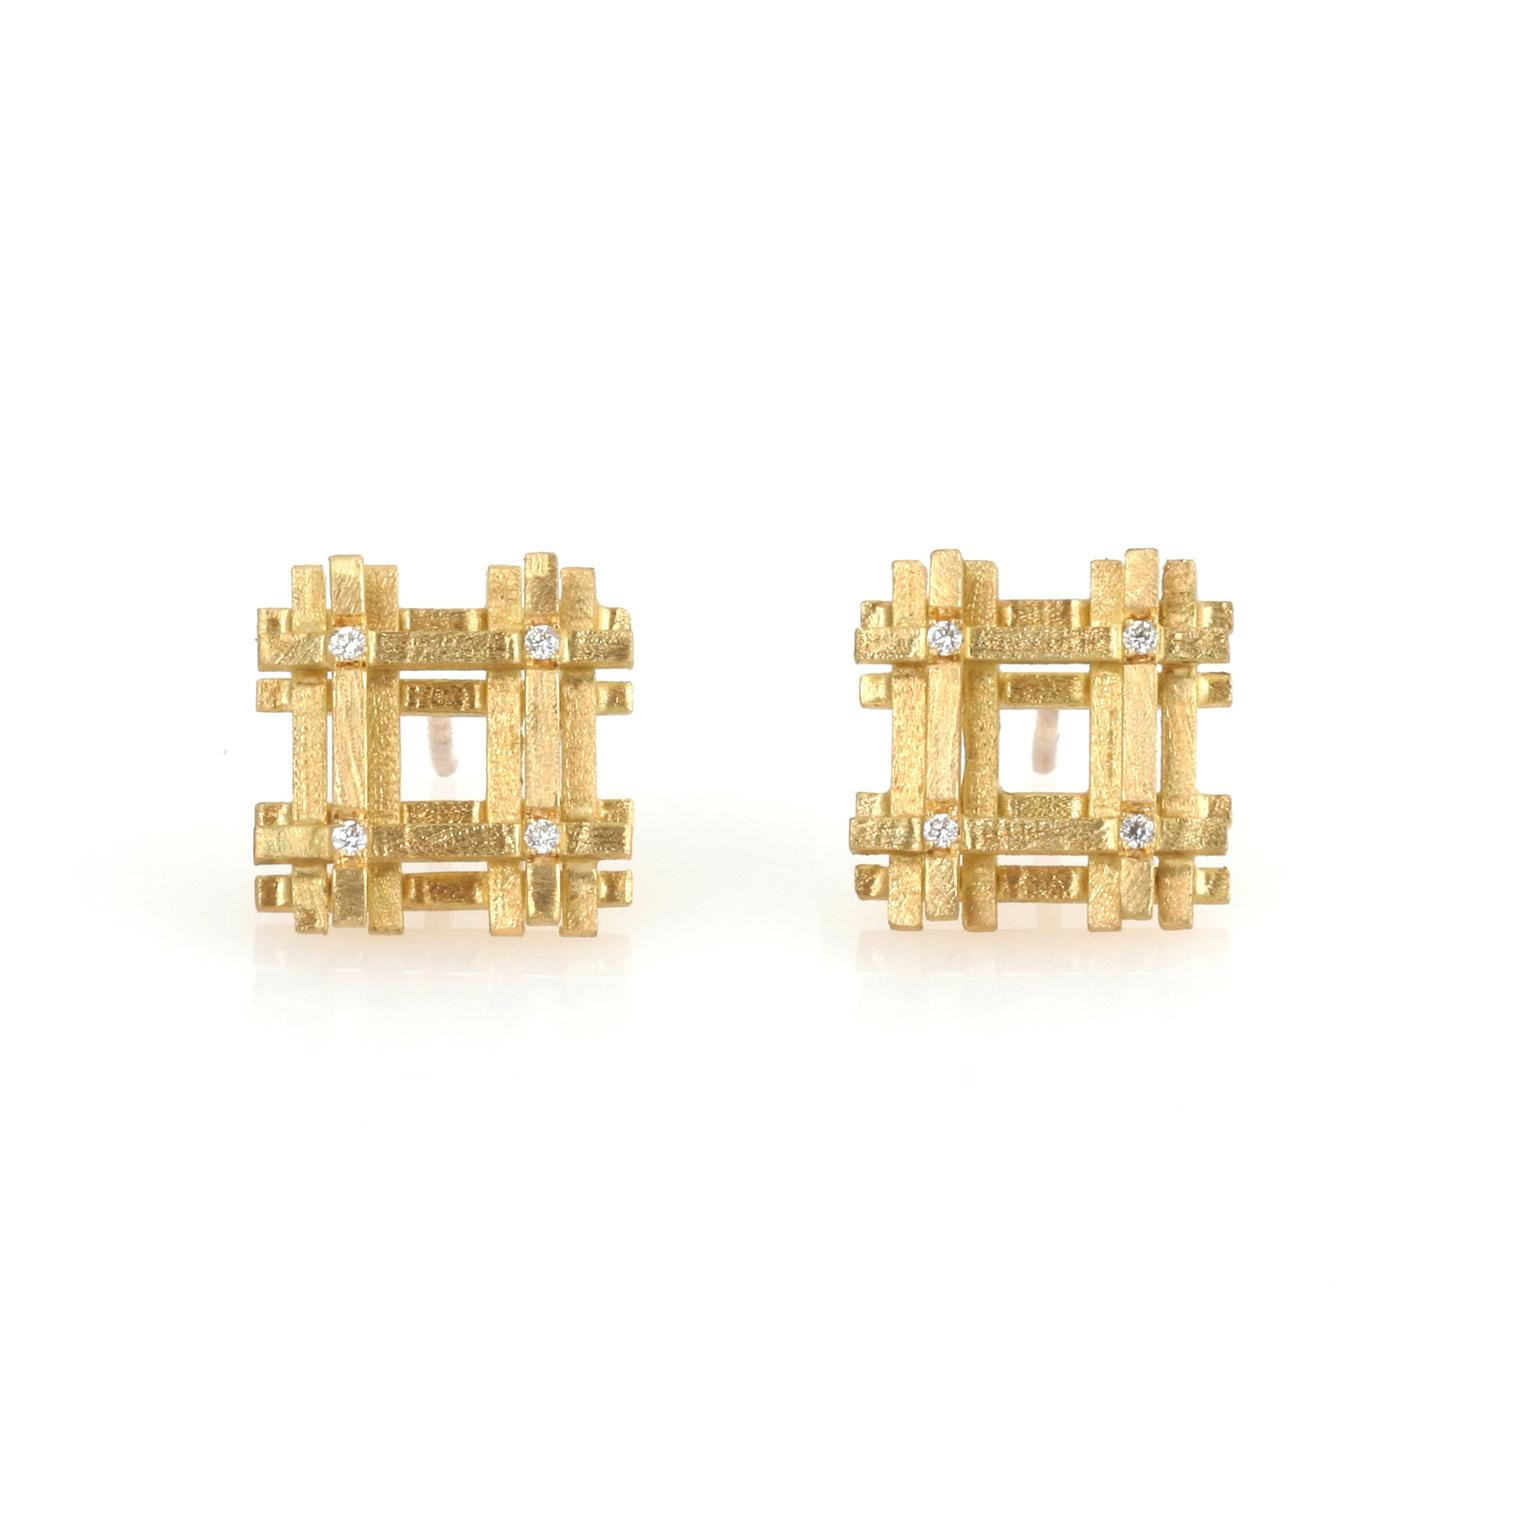 Shimell and Madden diamond earrings